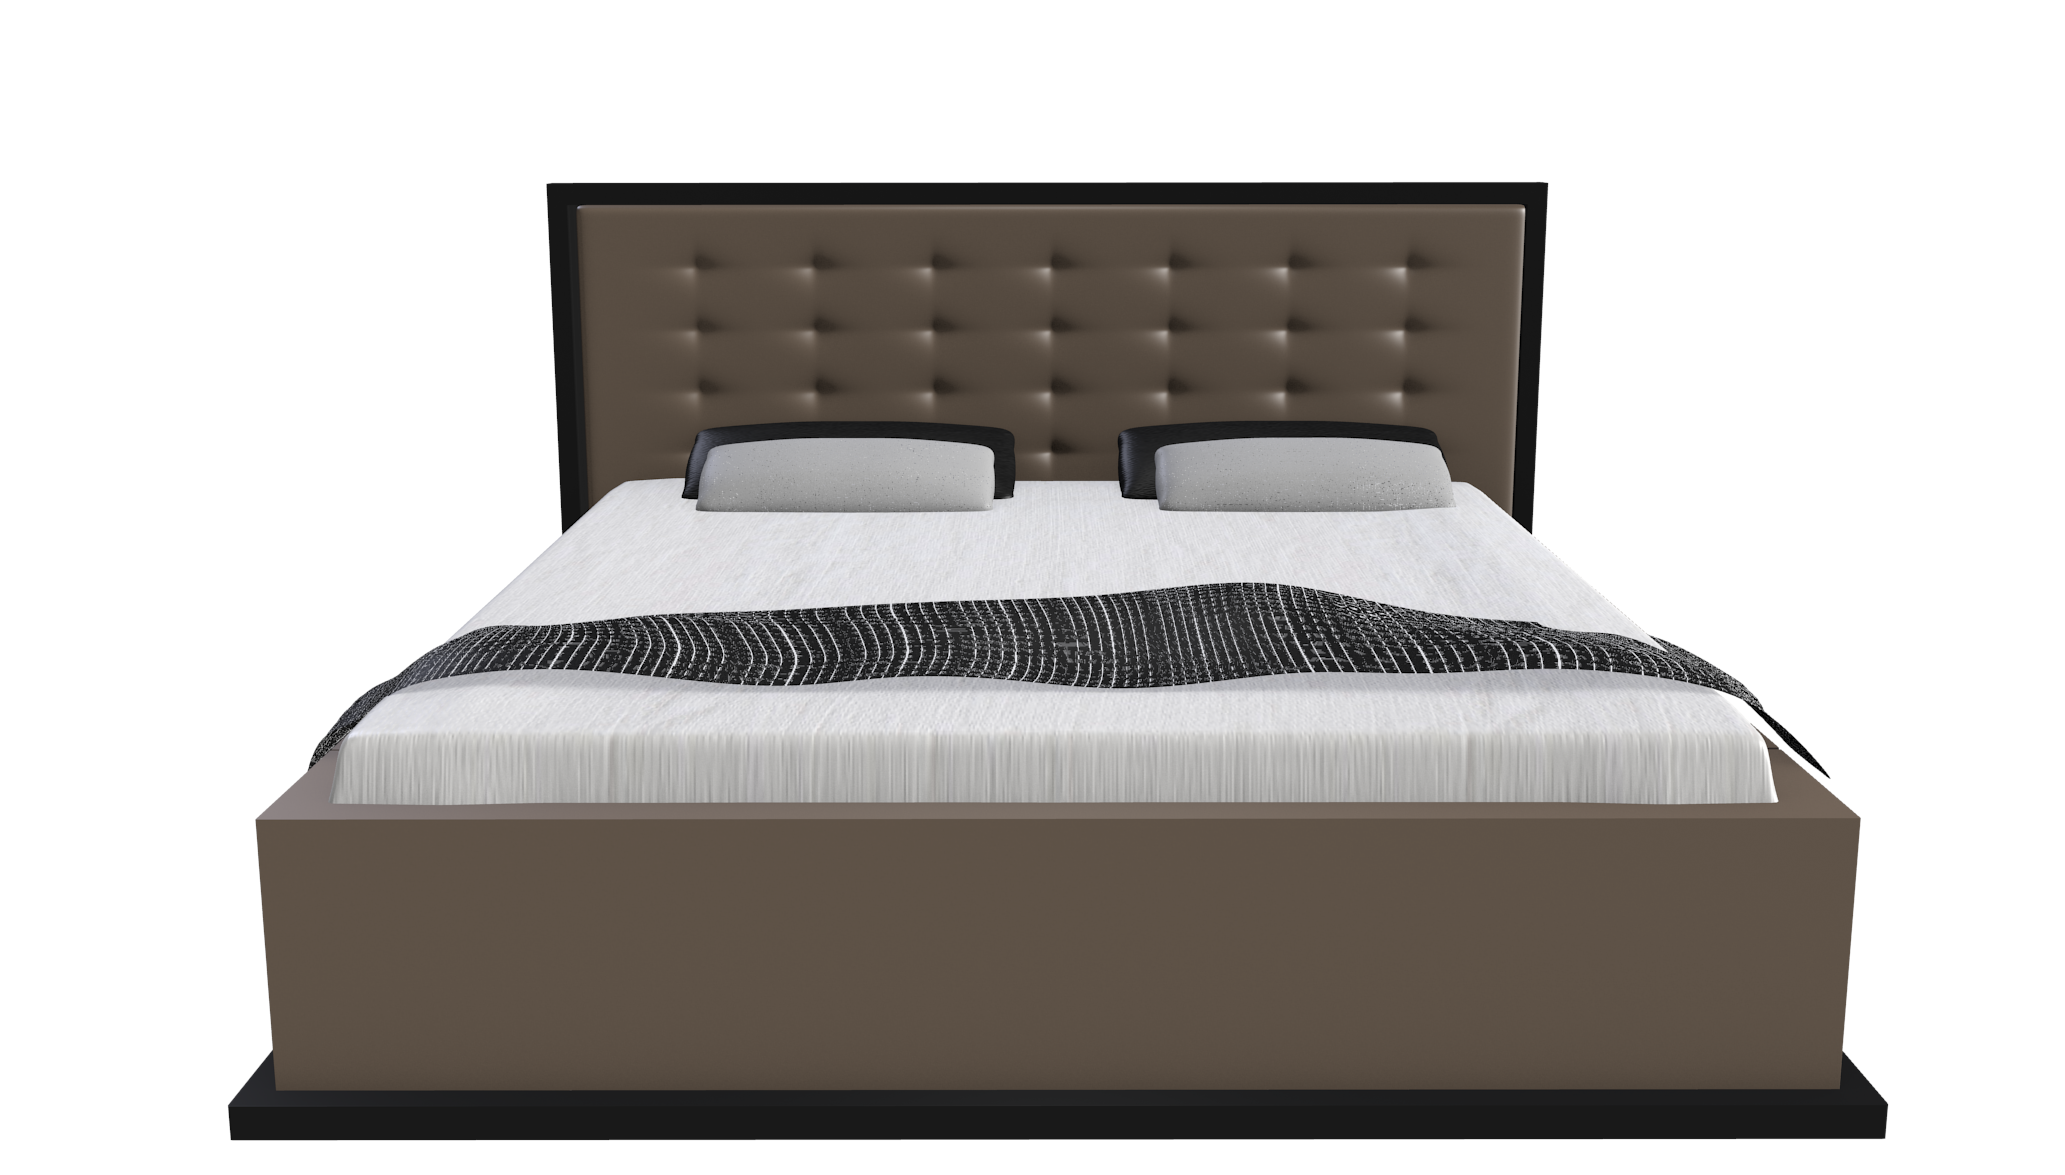 king bed model blender 3d model